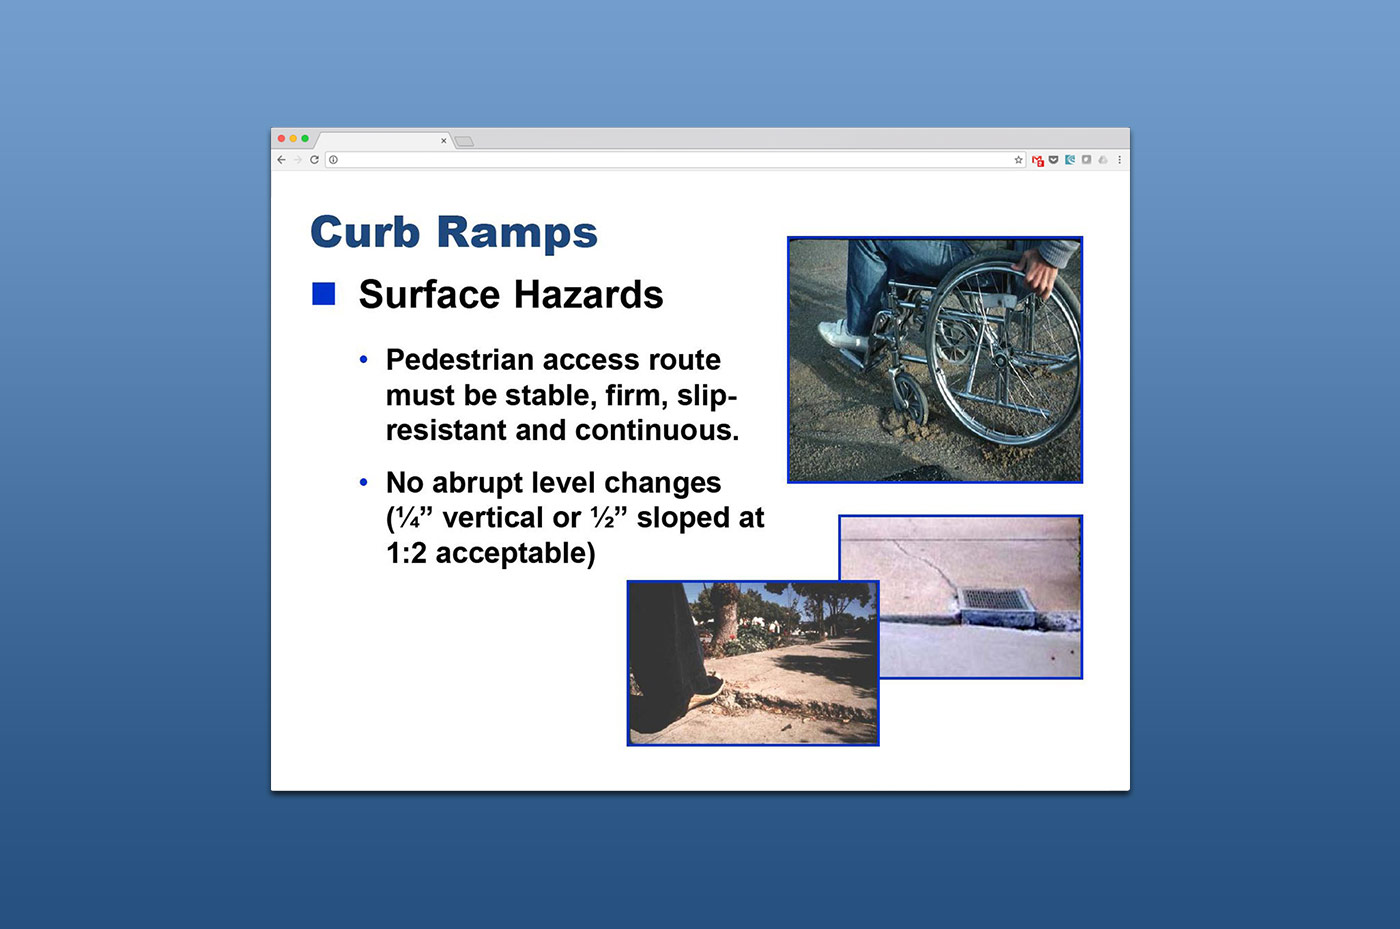 Webinars - Curb Ramps slide